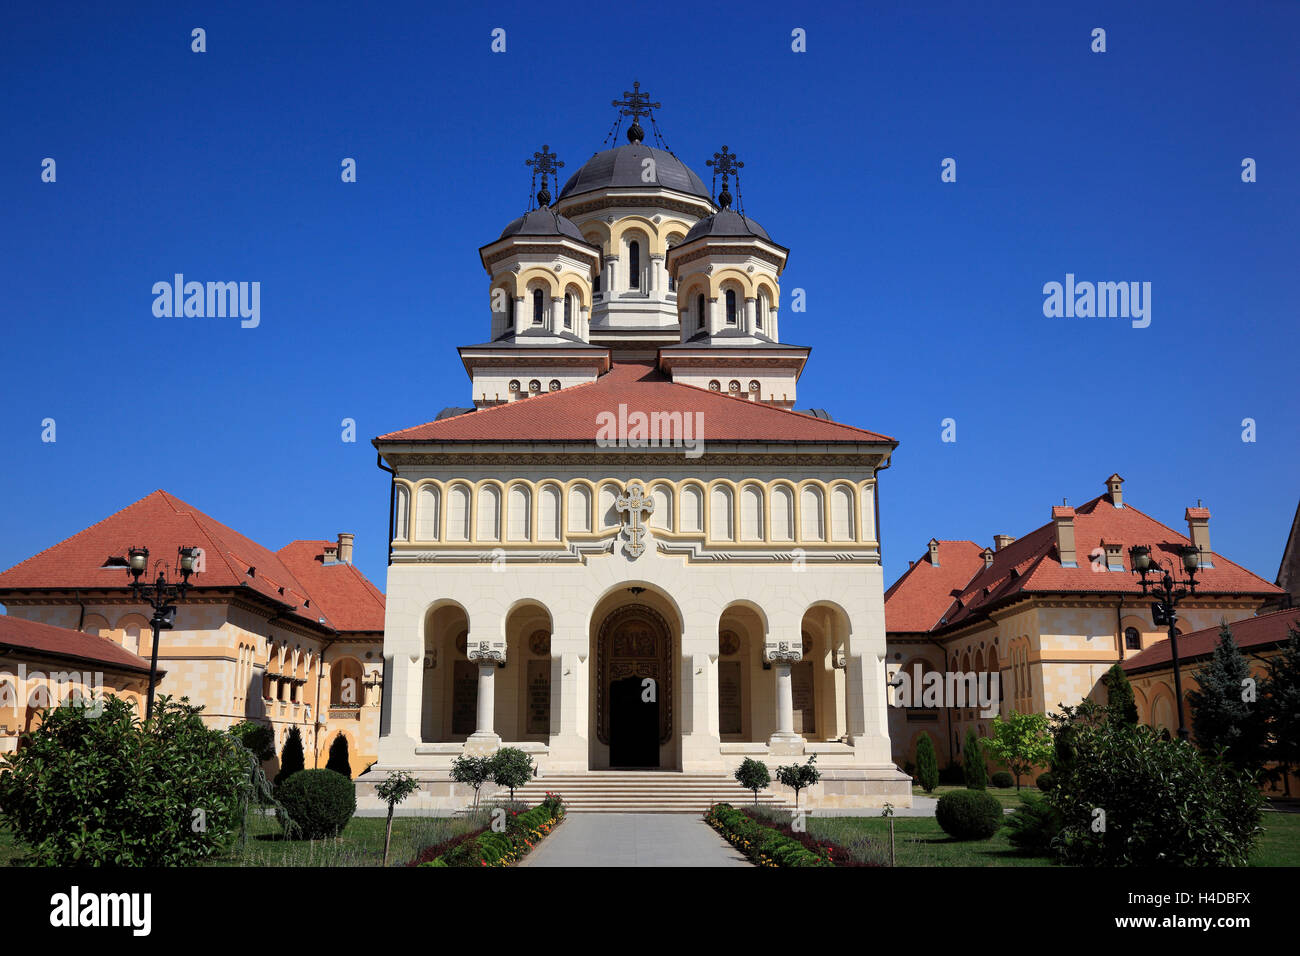 A coronation cathedral the Roumanian-orthodox church, alb Iulia, bellows radian, in German Karl's castle, is - Stock Image